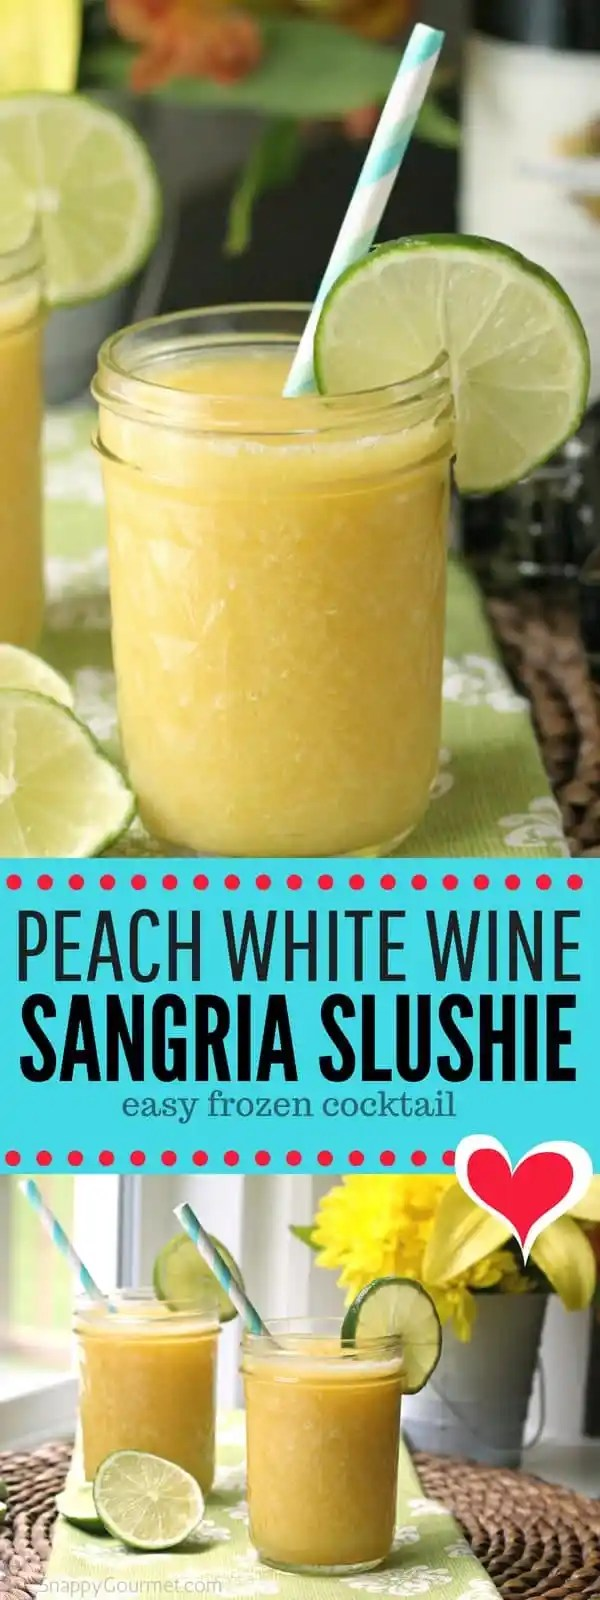 Peach White Wine Sangria Slushie - easy frozen cocktail recipe